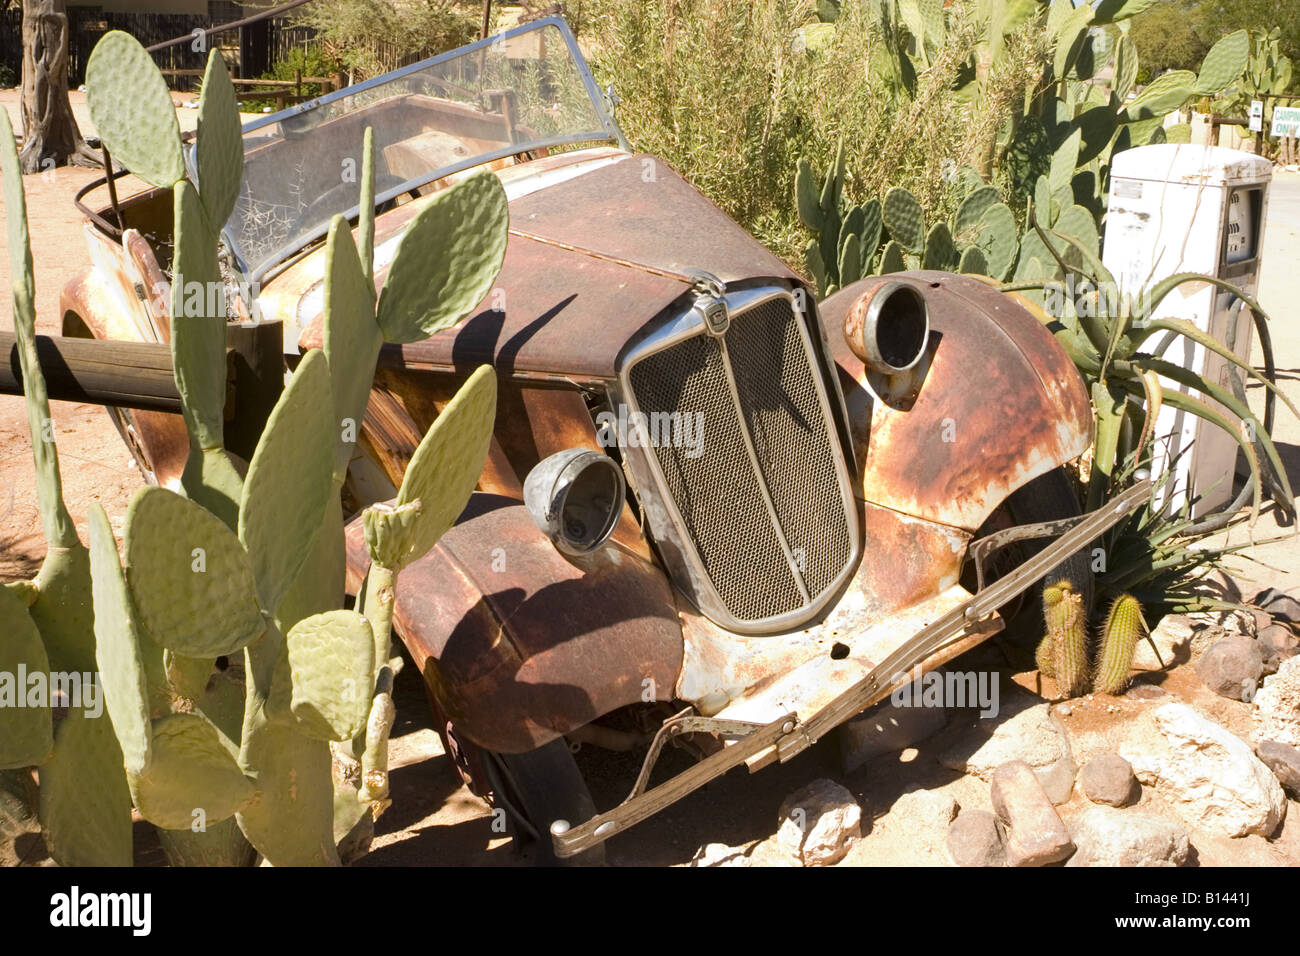 rusting car 'solitaire namibia' - Stock Image